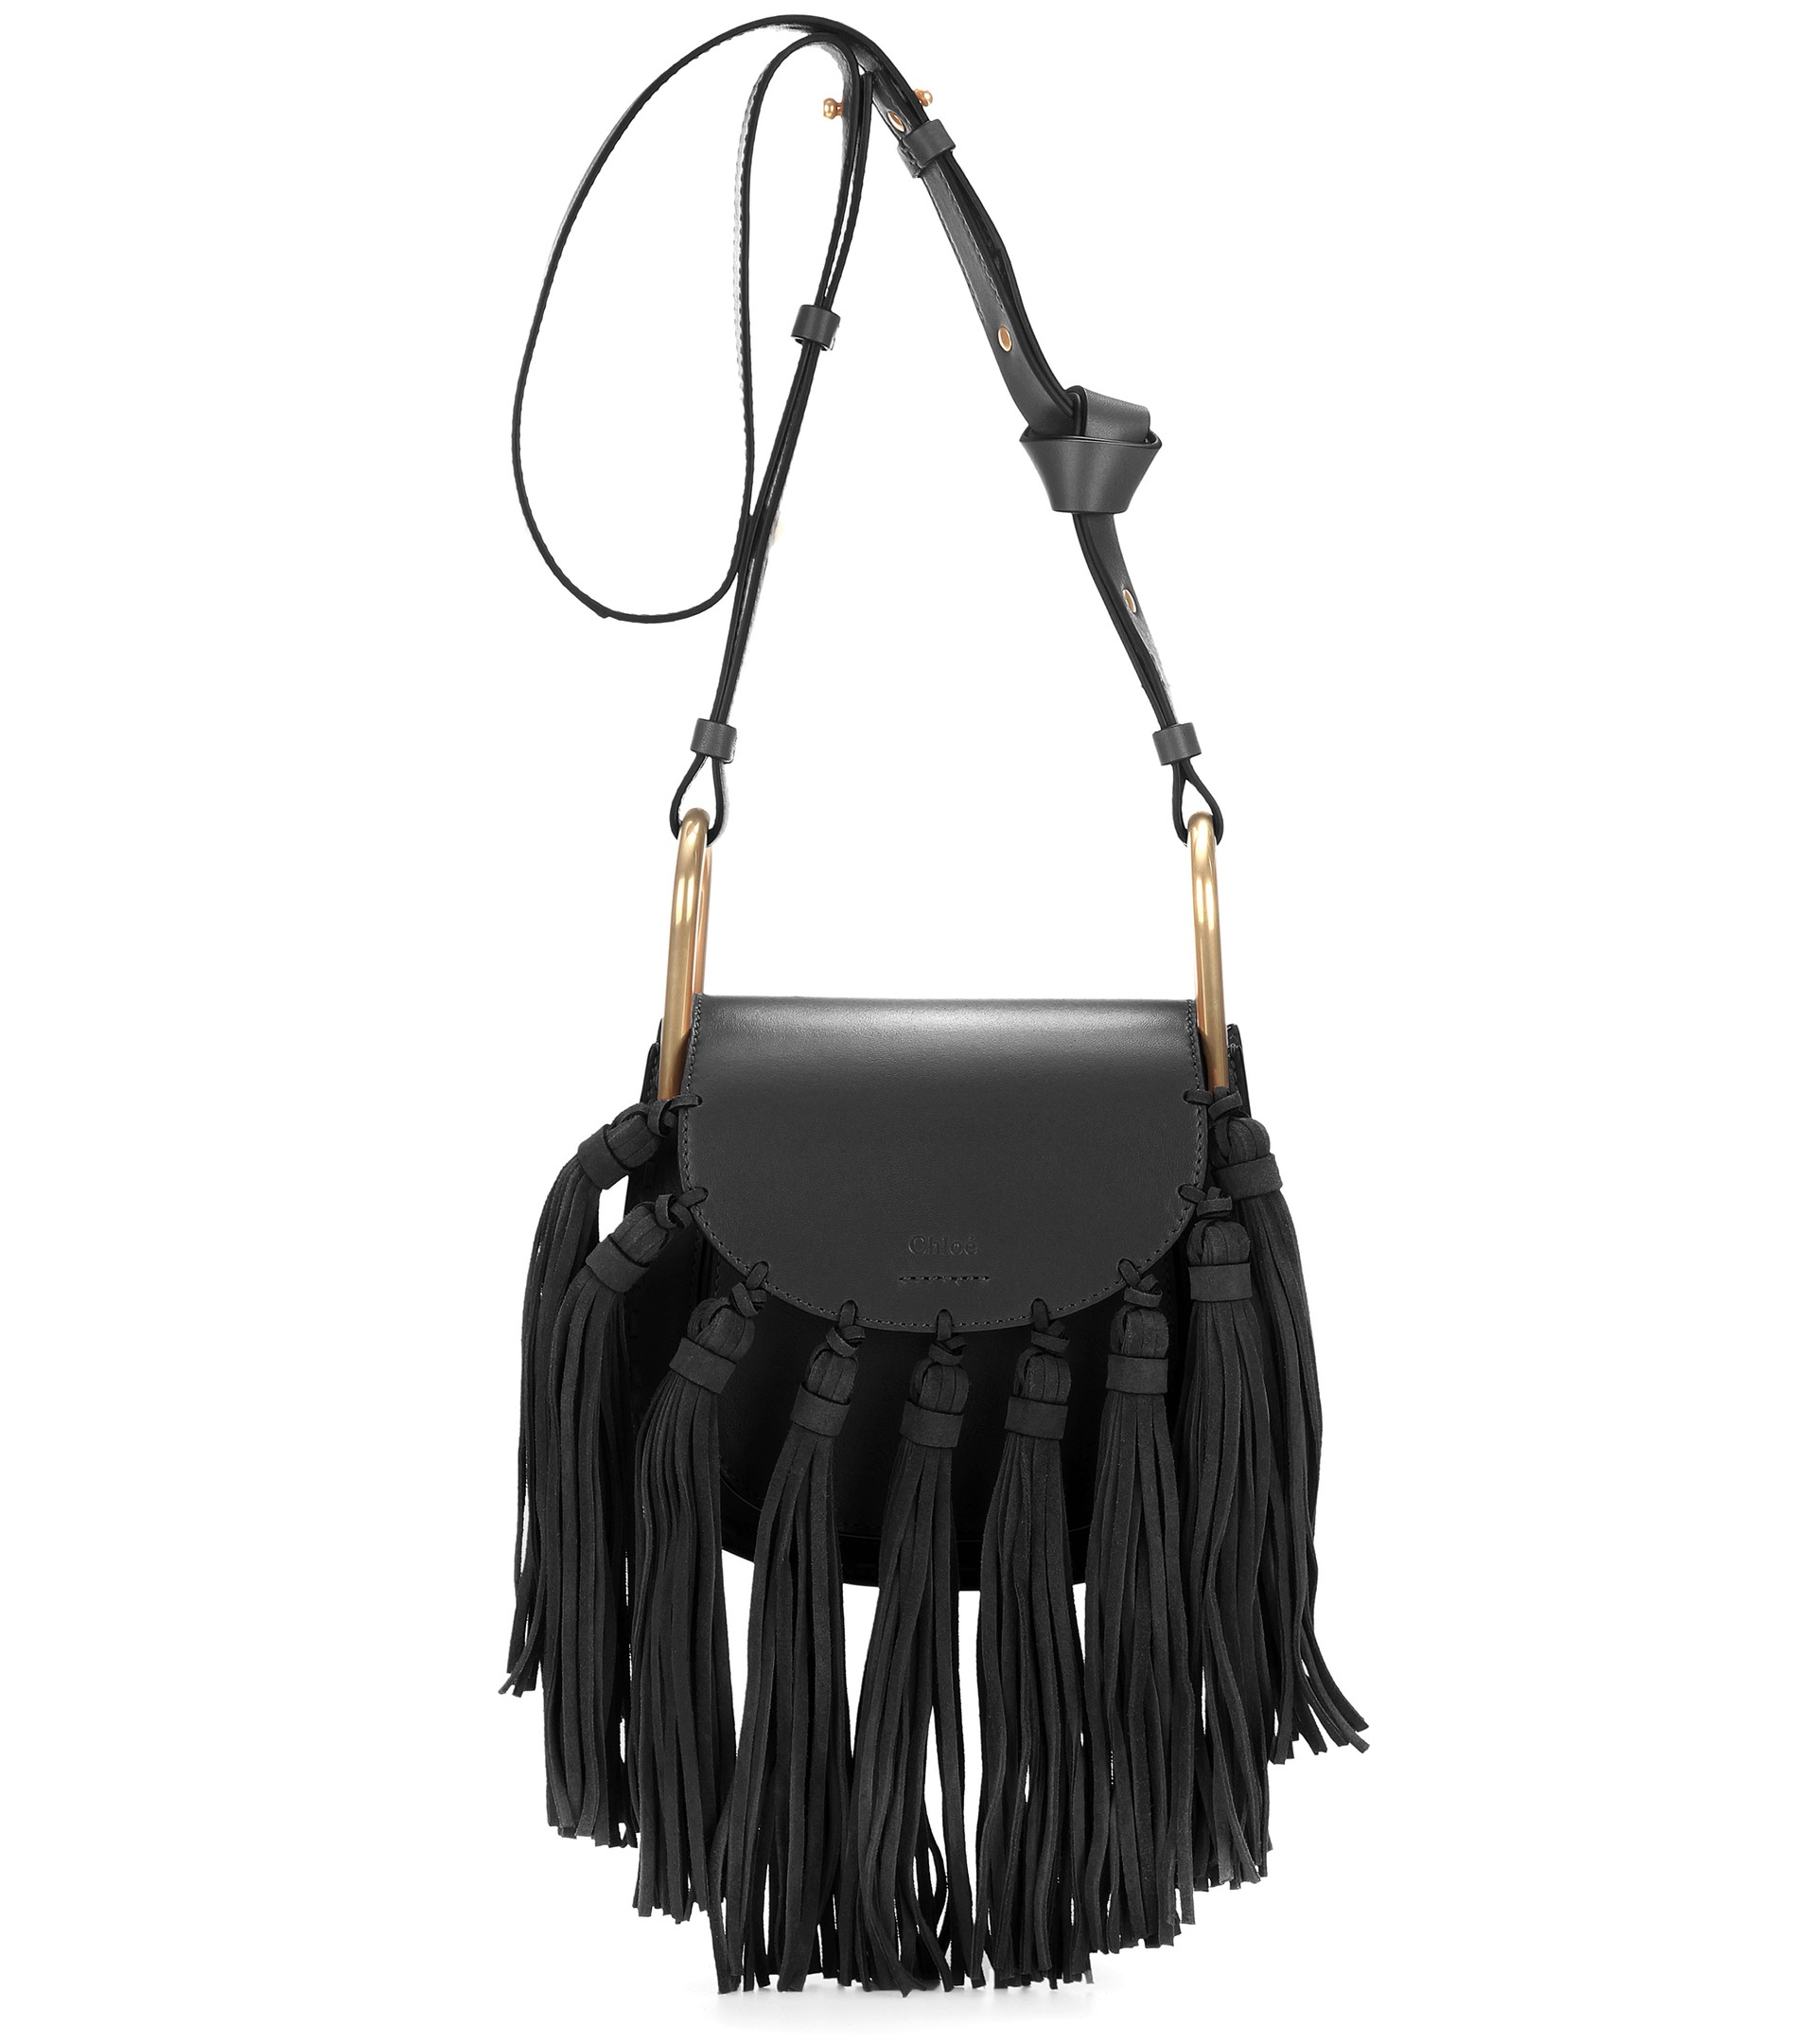 chloe paraty replica - chloe medium hudson tassel leather shoulder bag, chloe knockoff